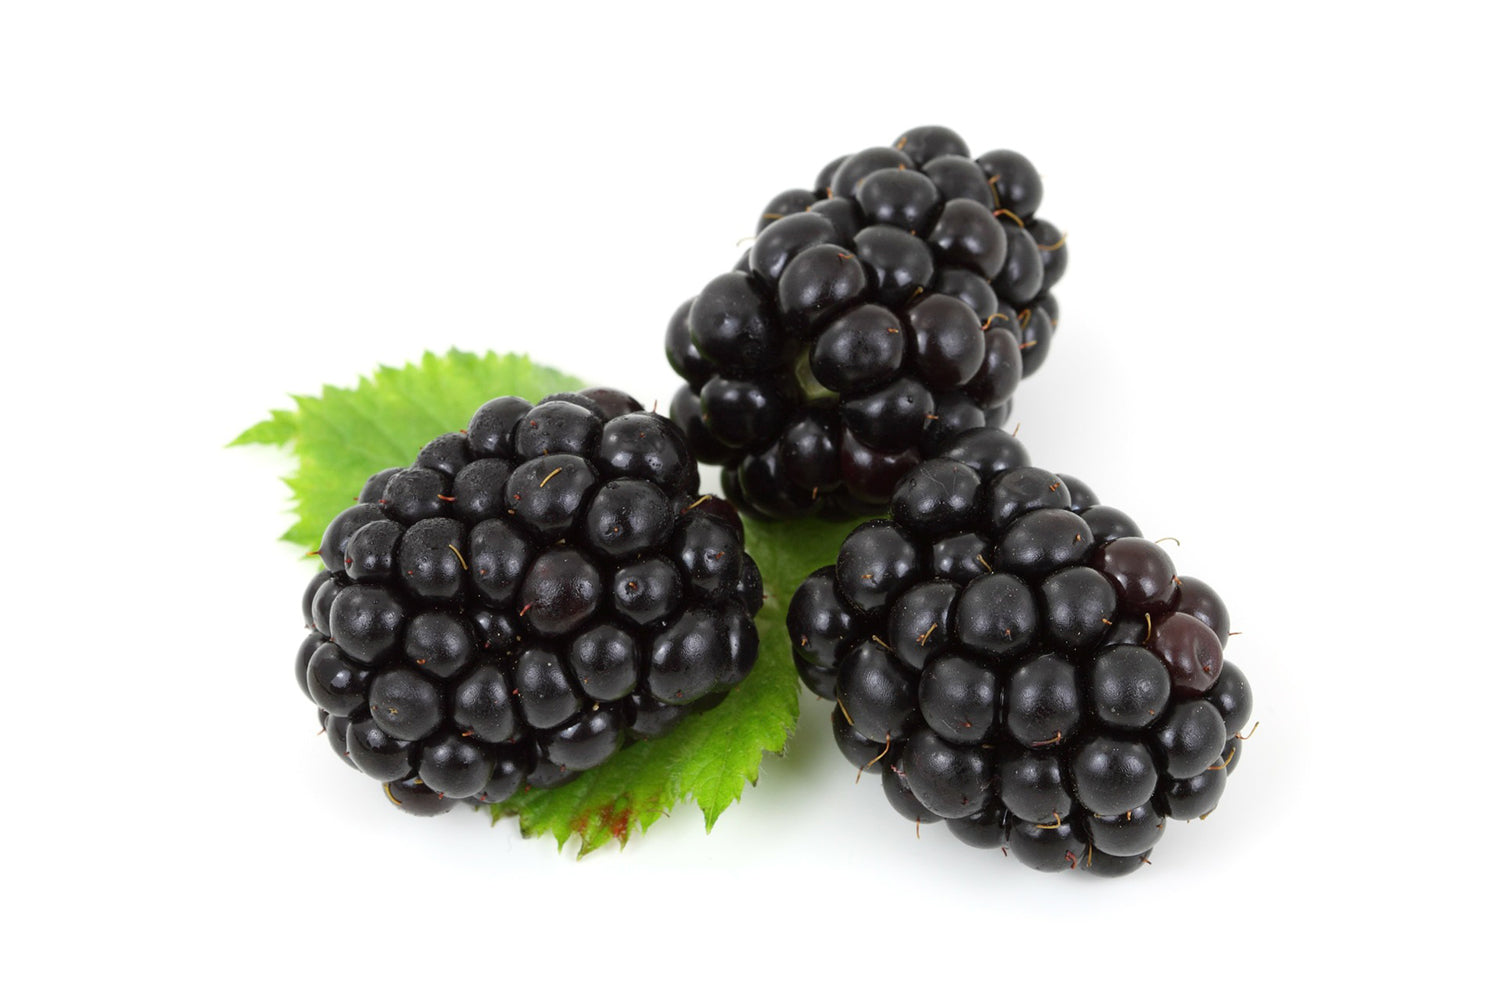 Blackberries for dogs